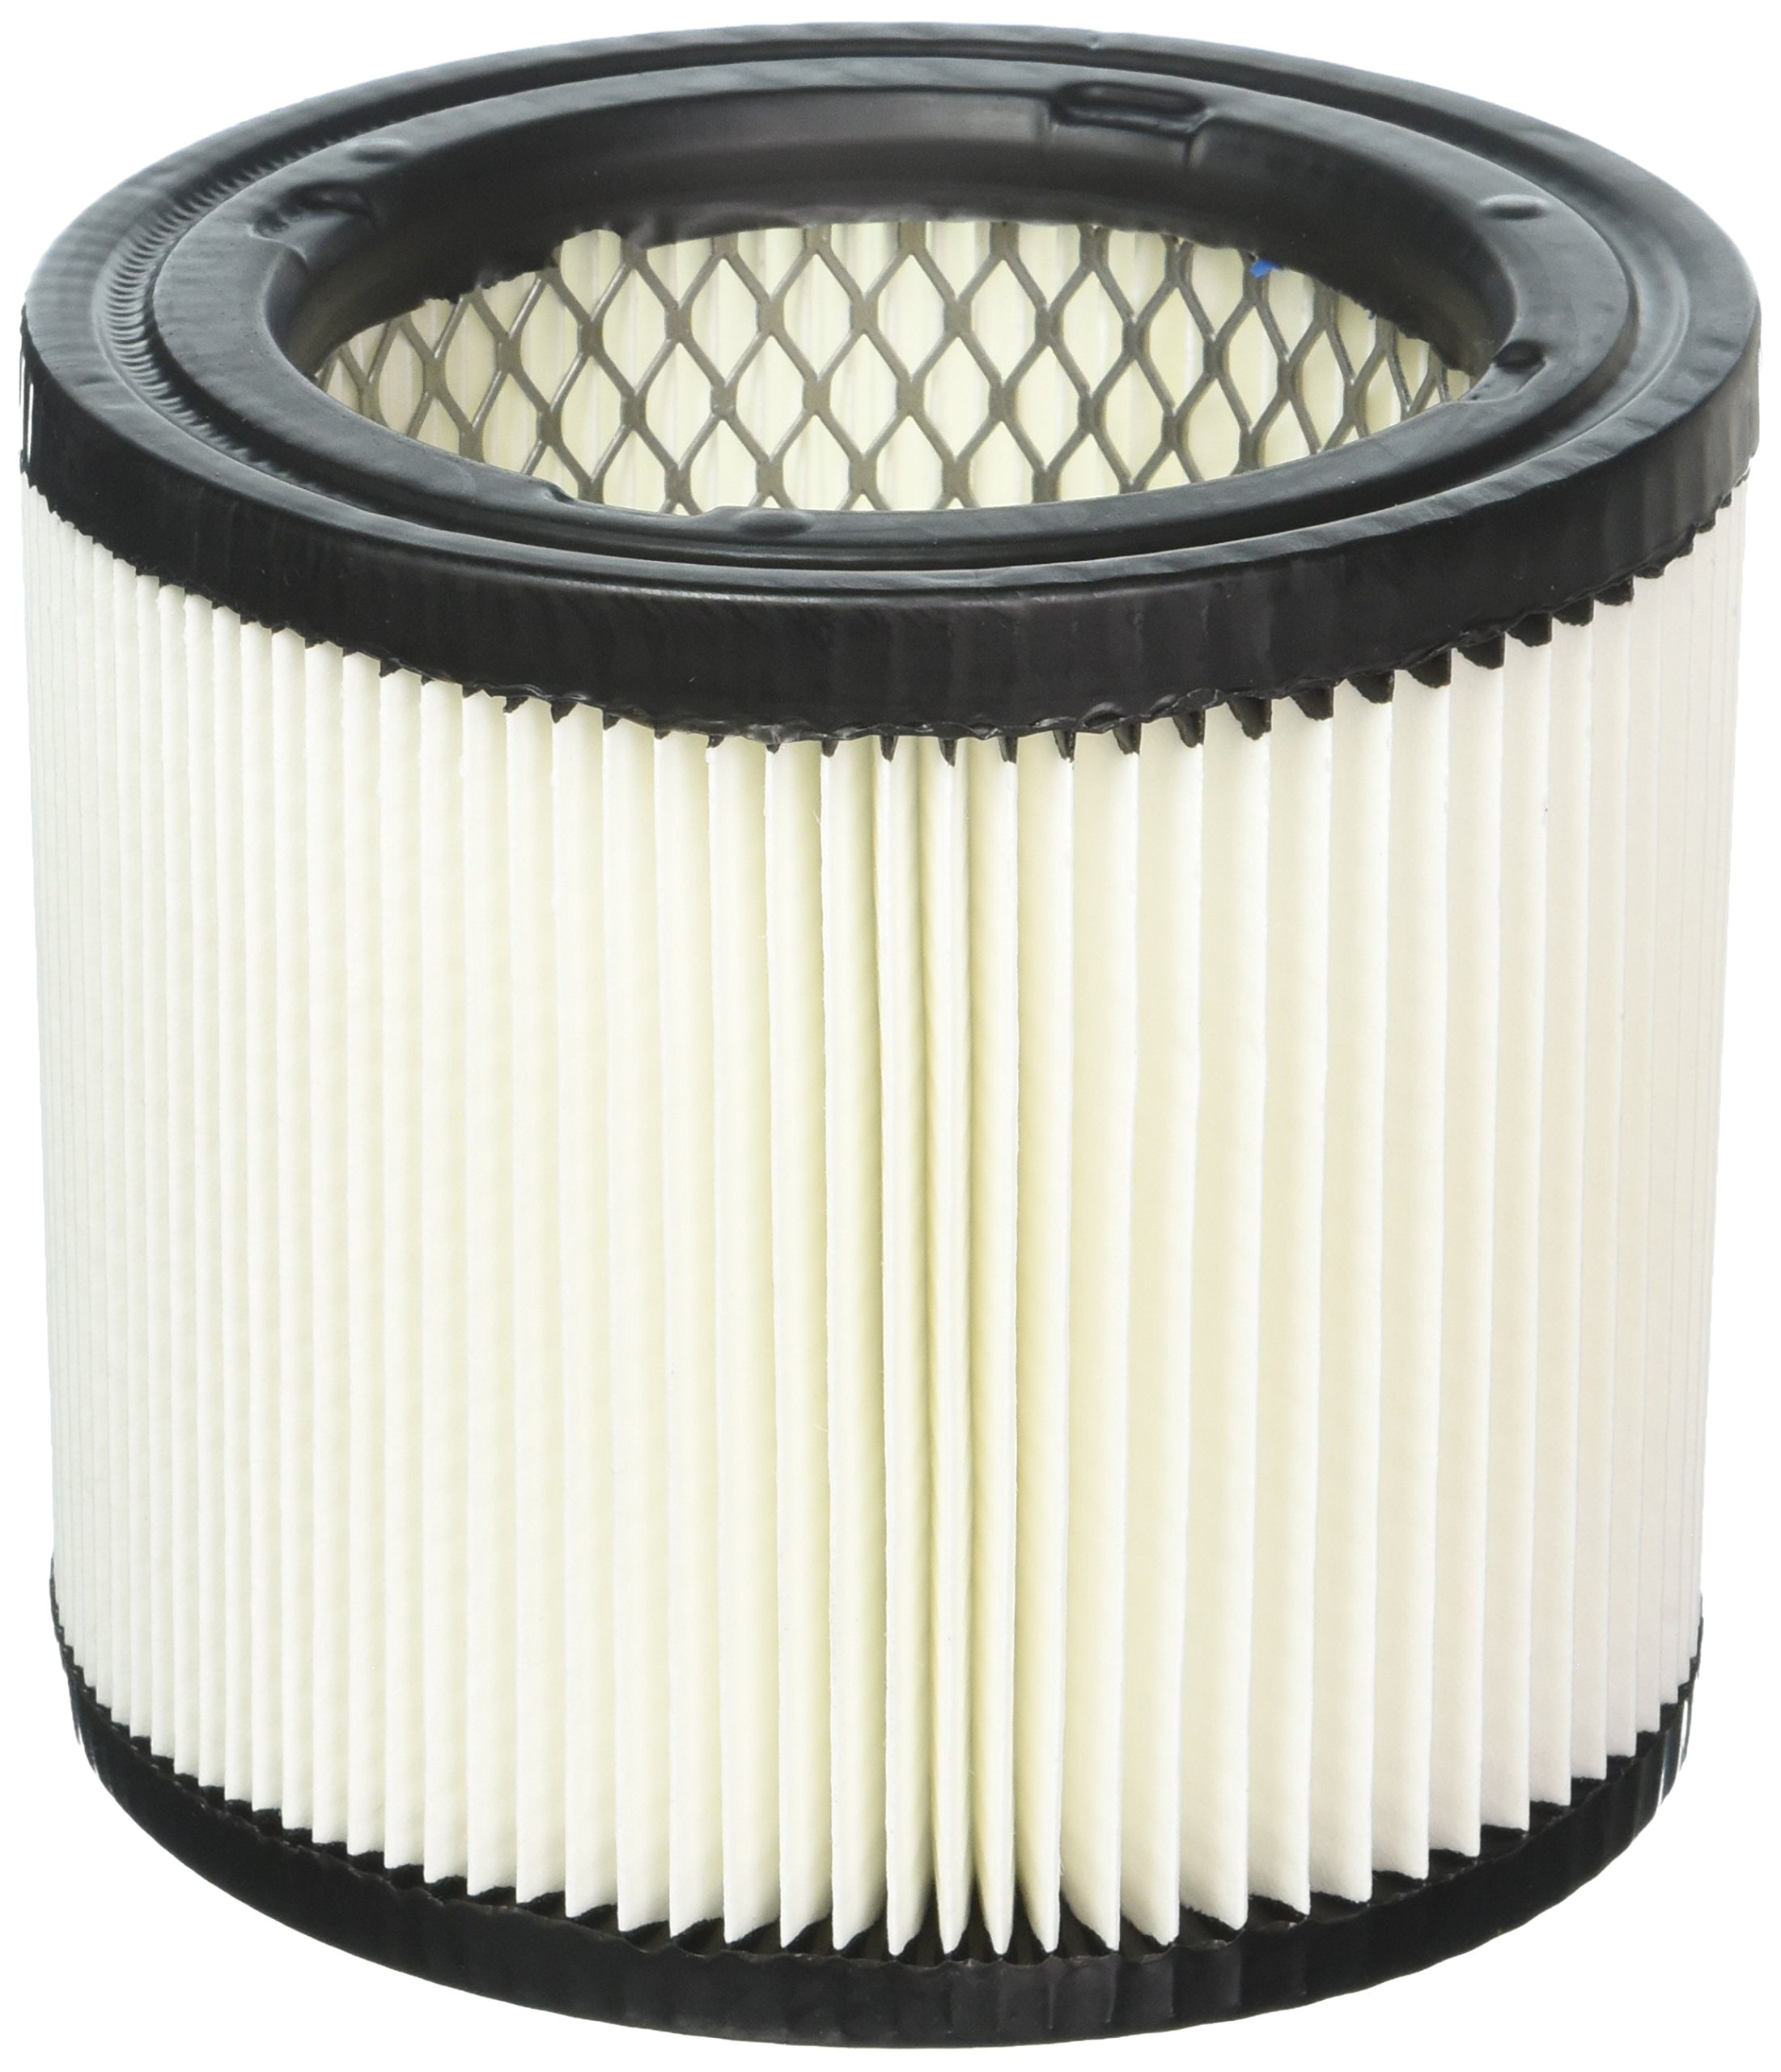 Shop Vac 9039800 Hangup Cartridge Filter for Shop Vac by Shop-Vac